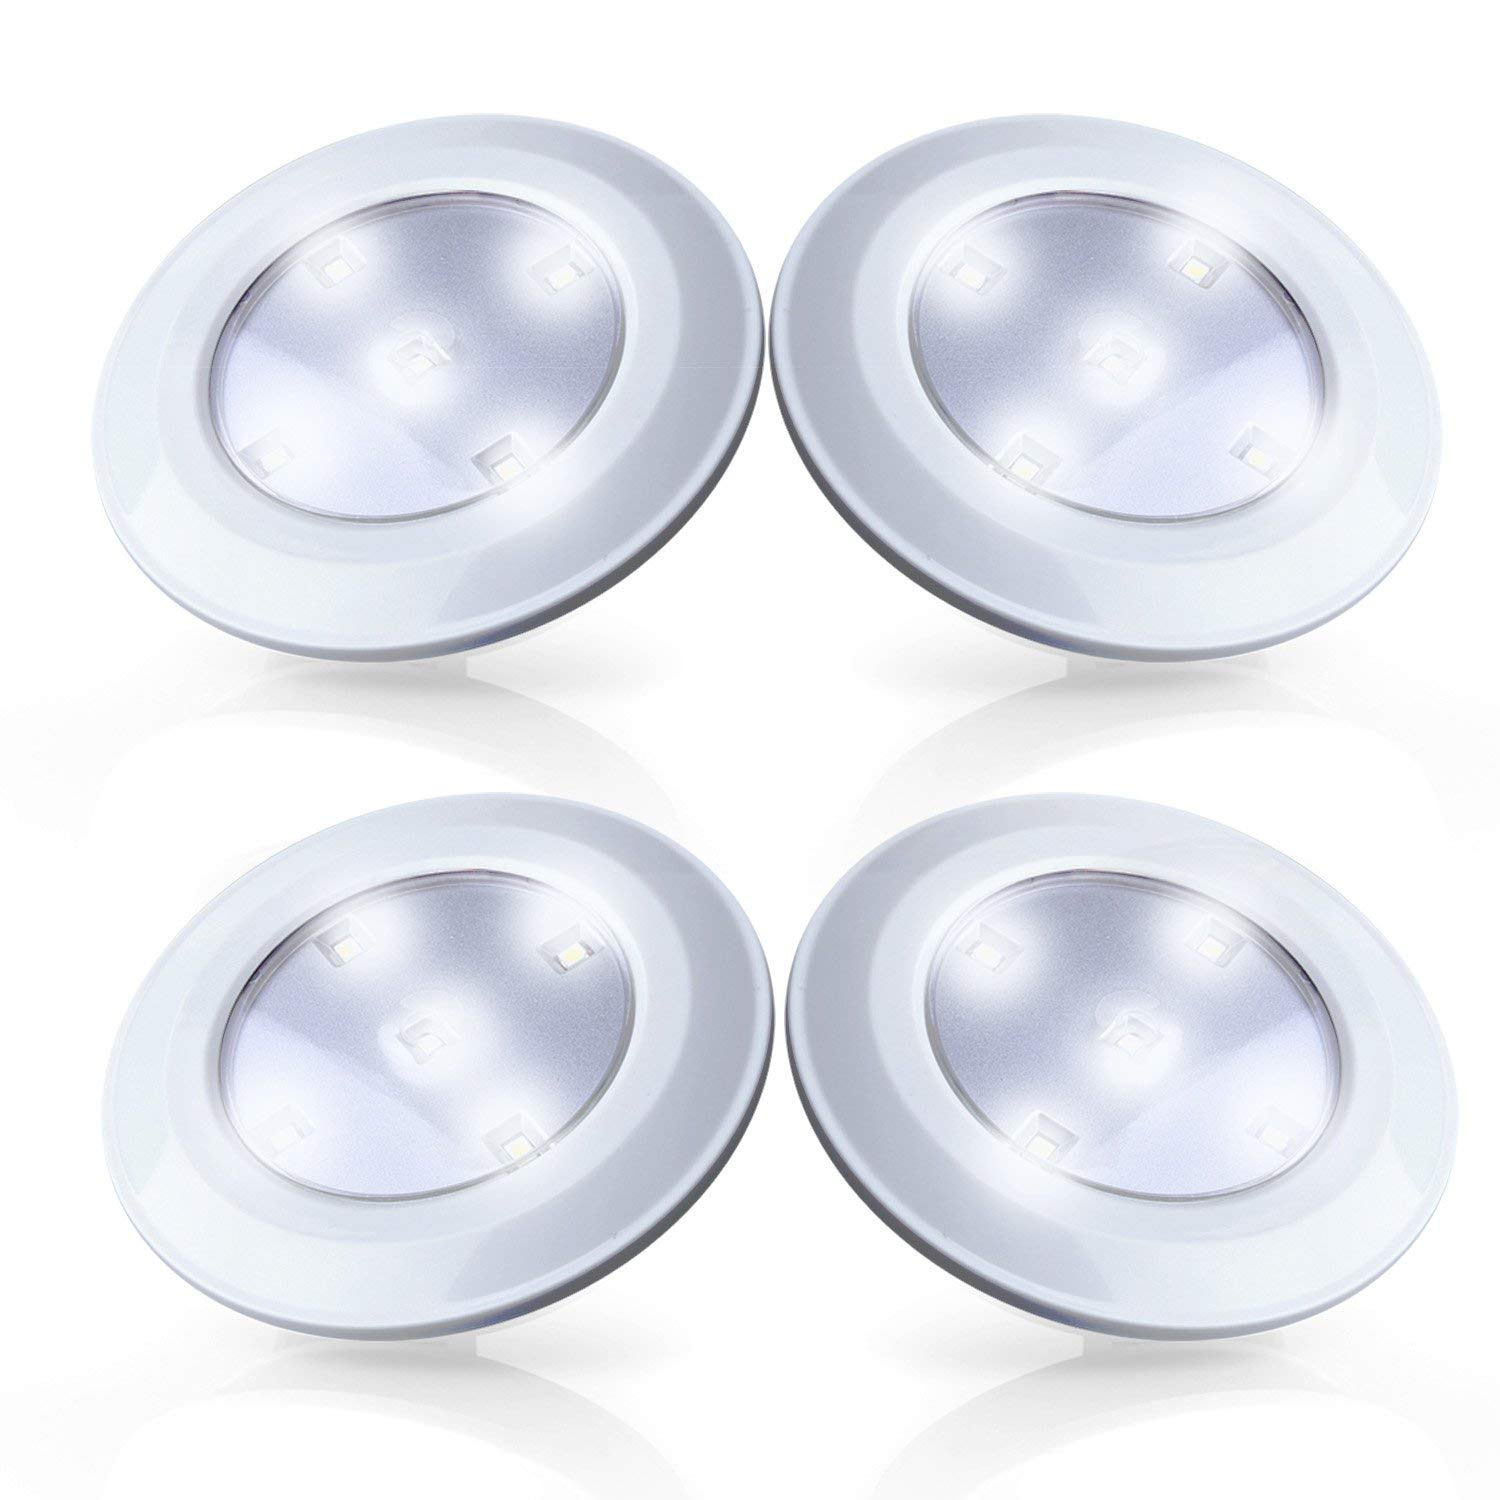 Tap Lights 4 Pack LED Battery Operated Stick On Lights Wireless Closets Cabinets Cupboards Lights Puck Lights, White